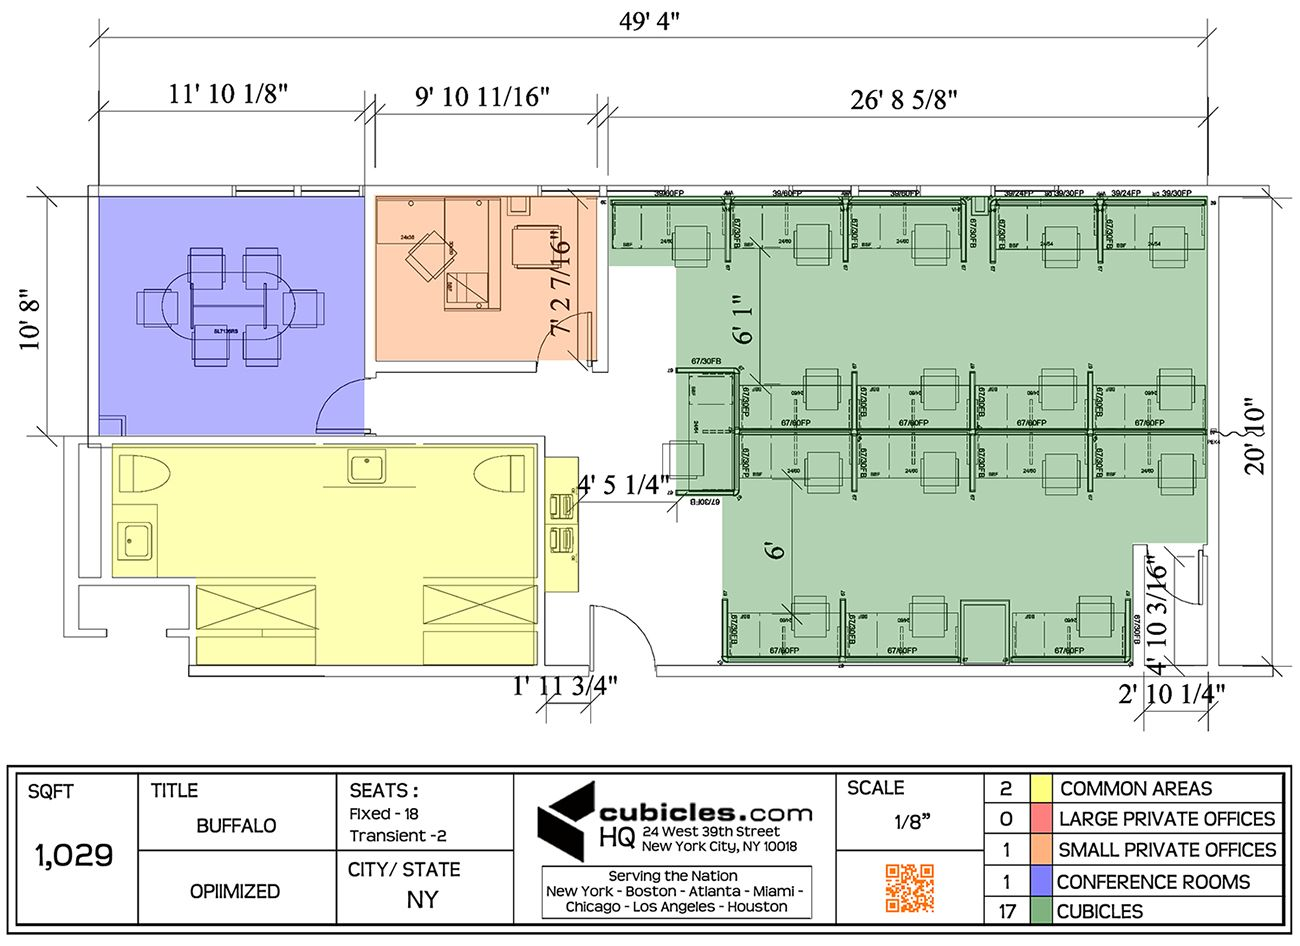 Cubicle Layout Office Planning For A Small Office Office Space Planning Office Space Design Space Planning